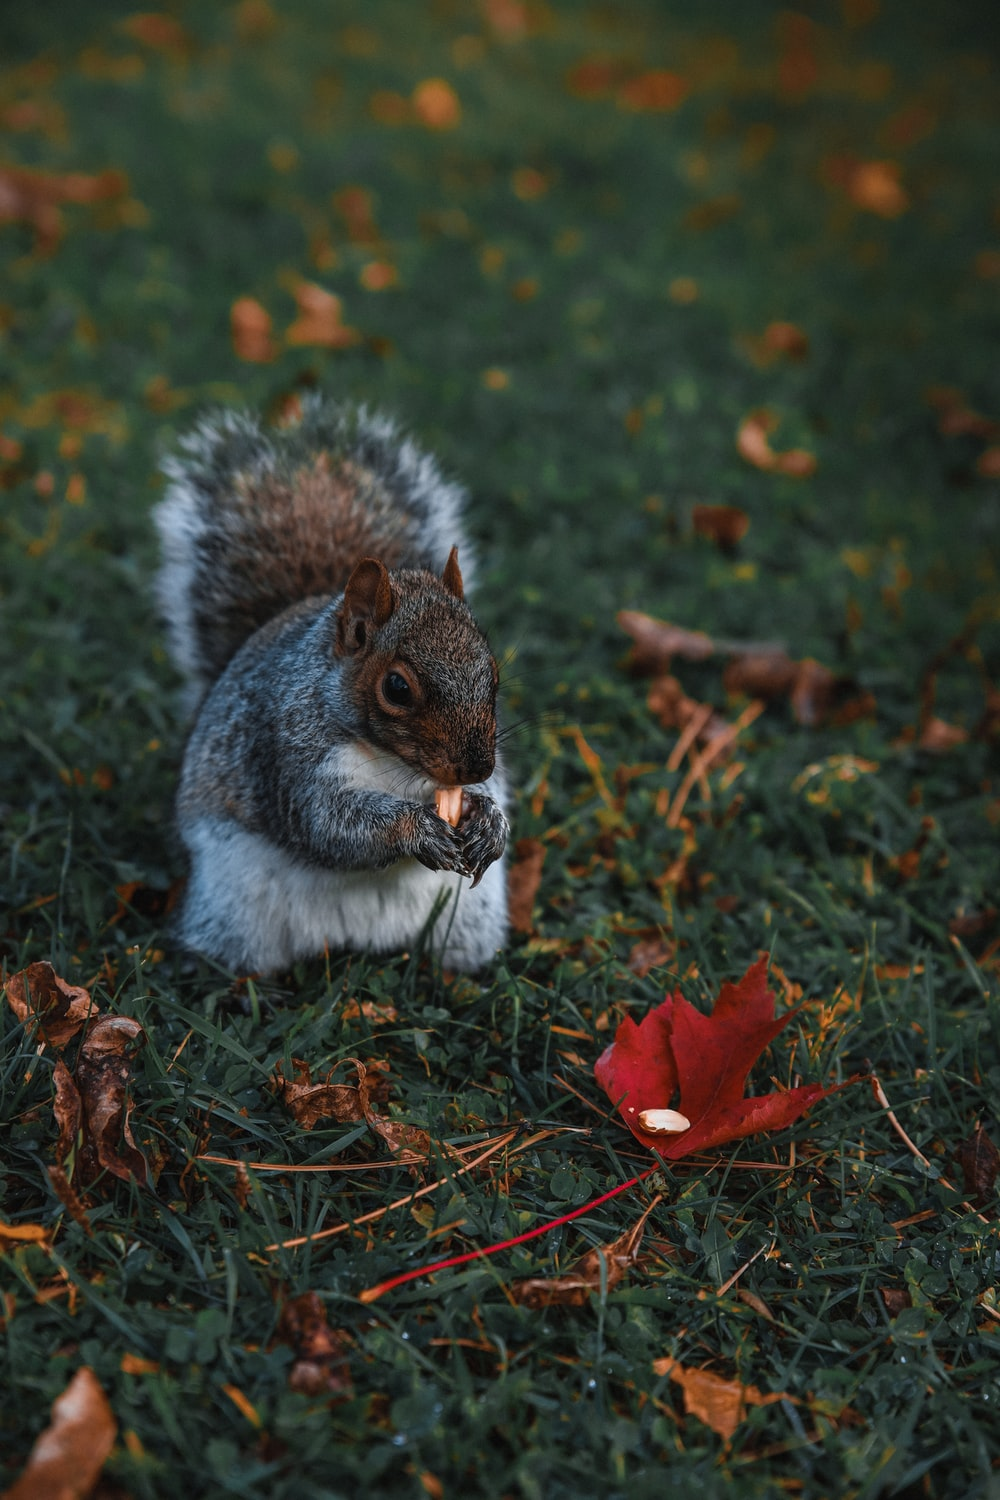 grey and white squirrel on green grass during daytime